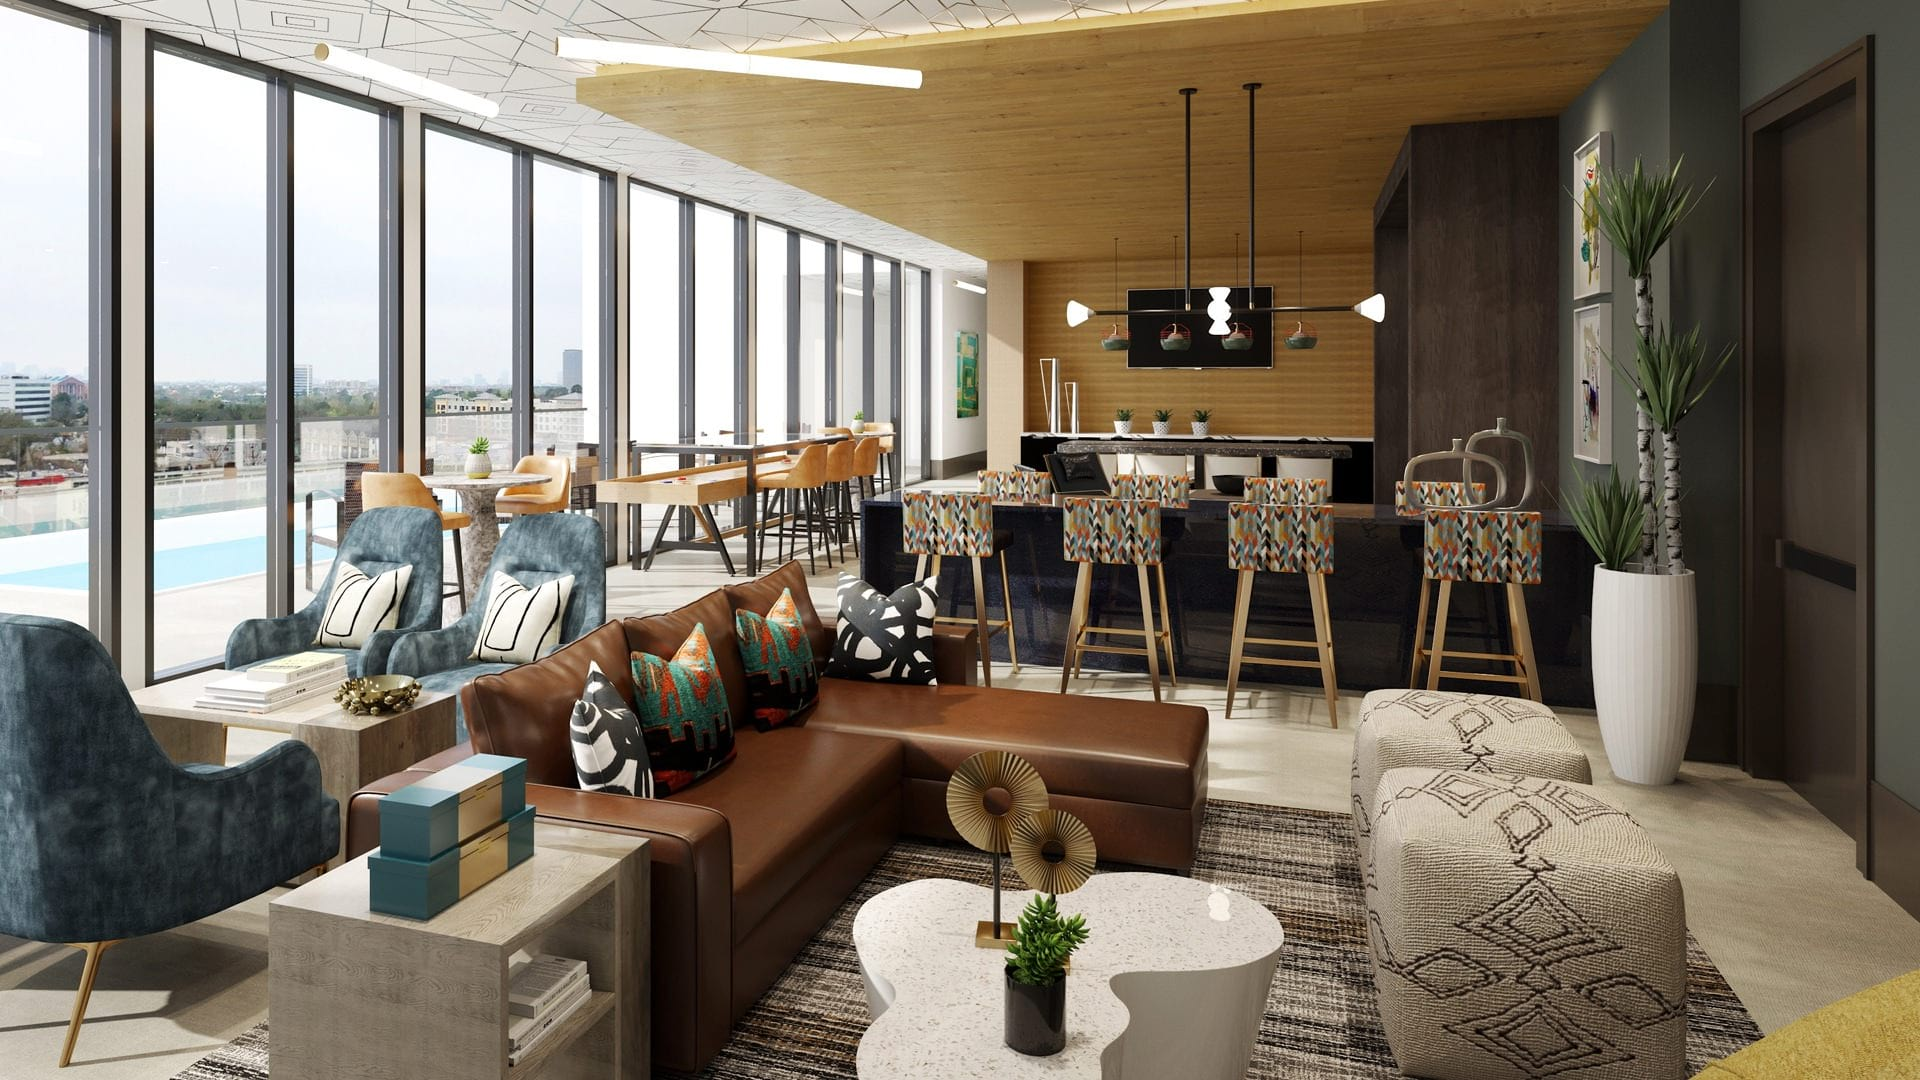 Sky Lounge with unobstructed view of the city